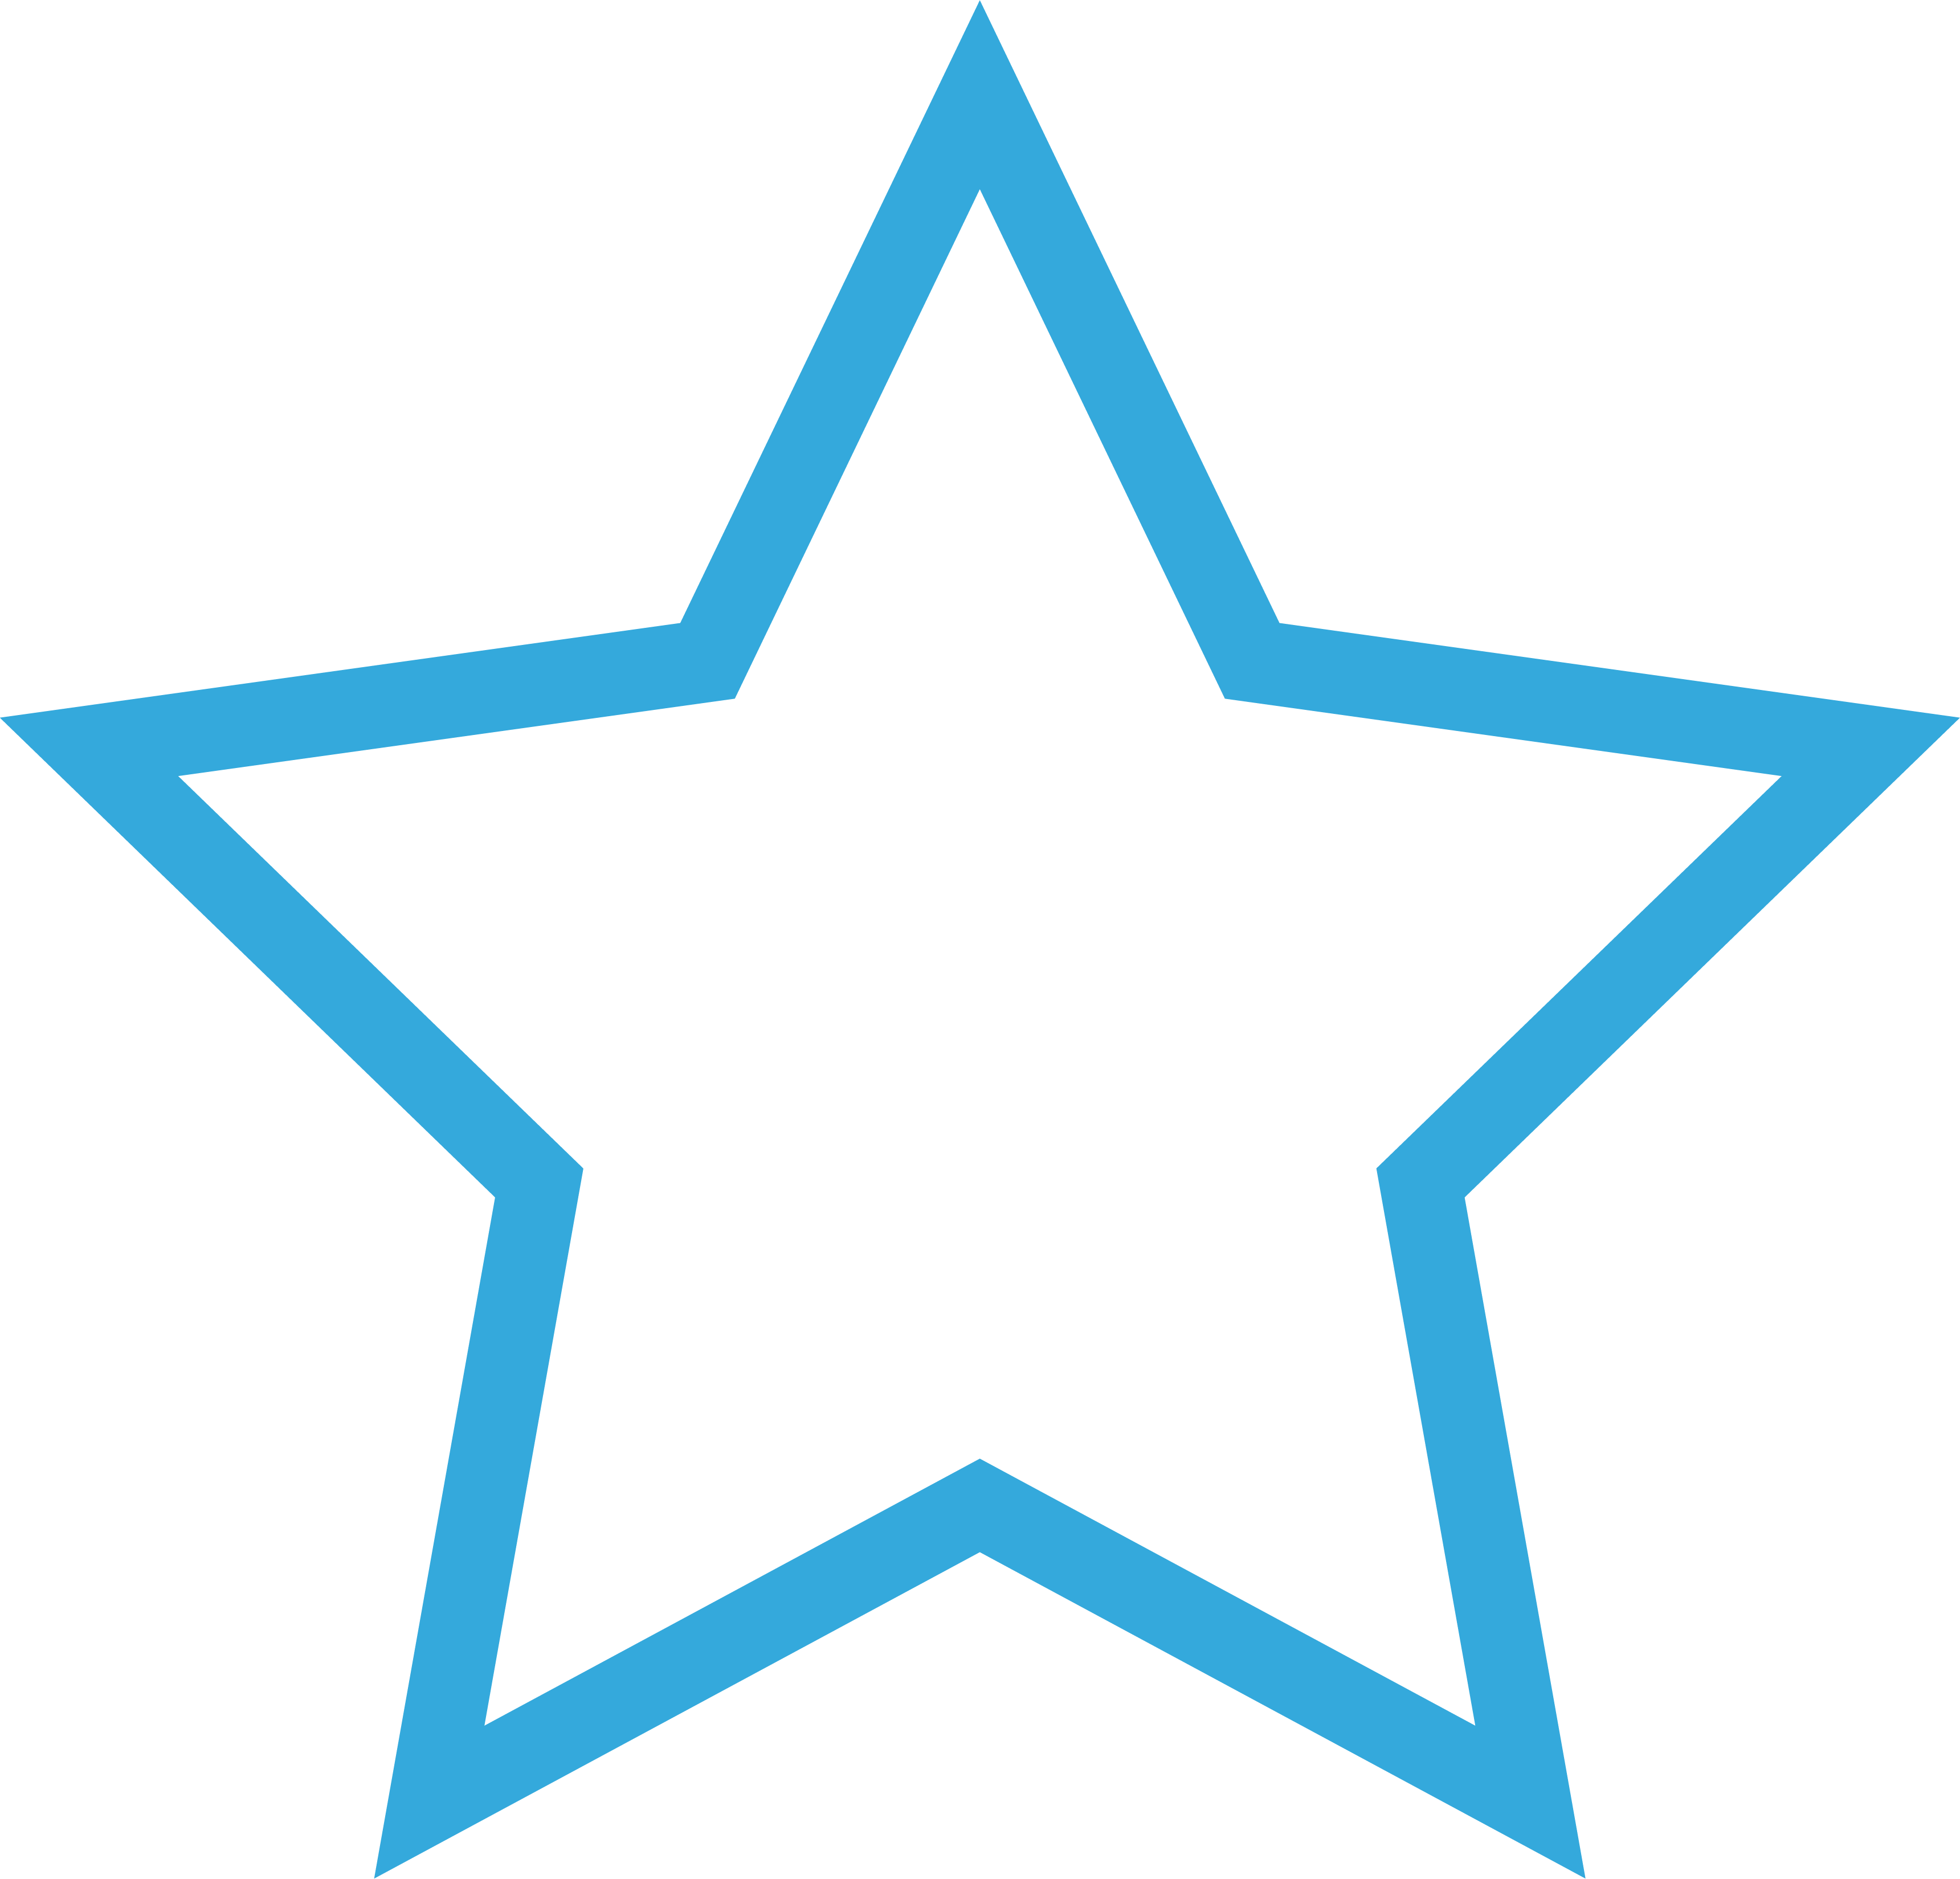 icon of a star.